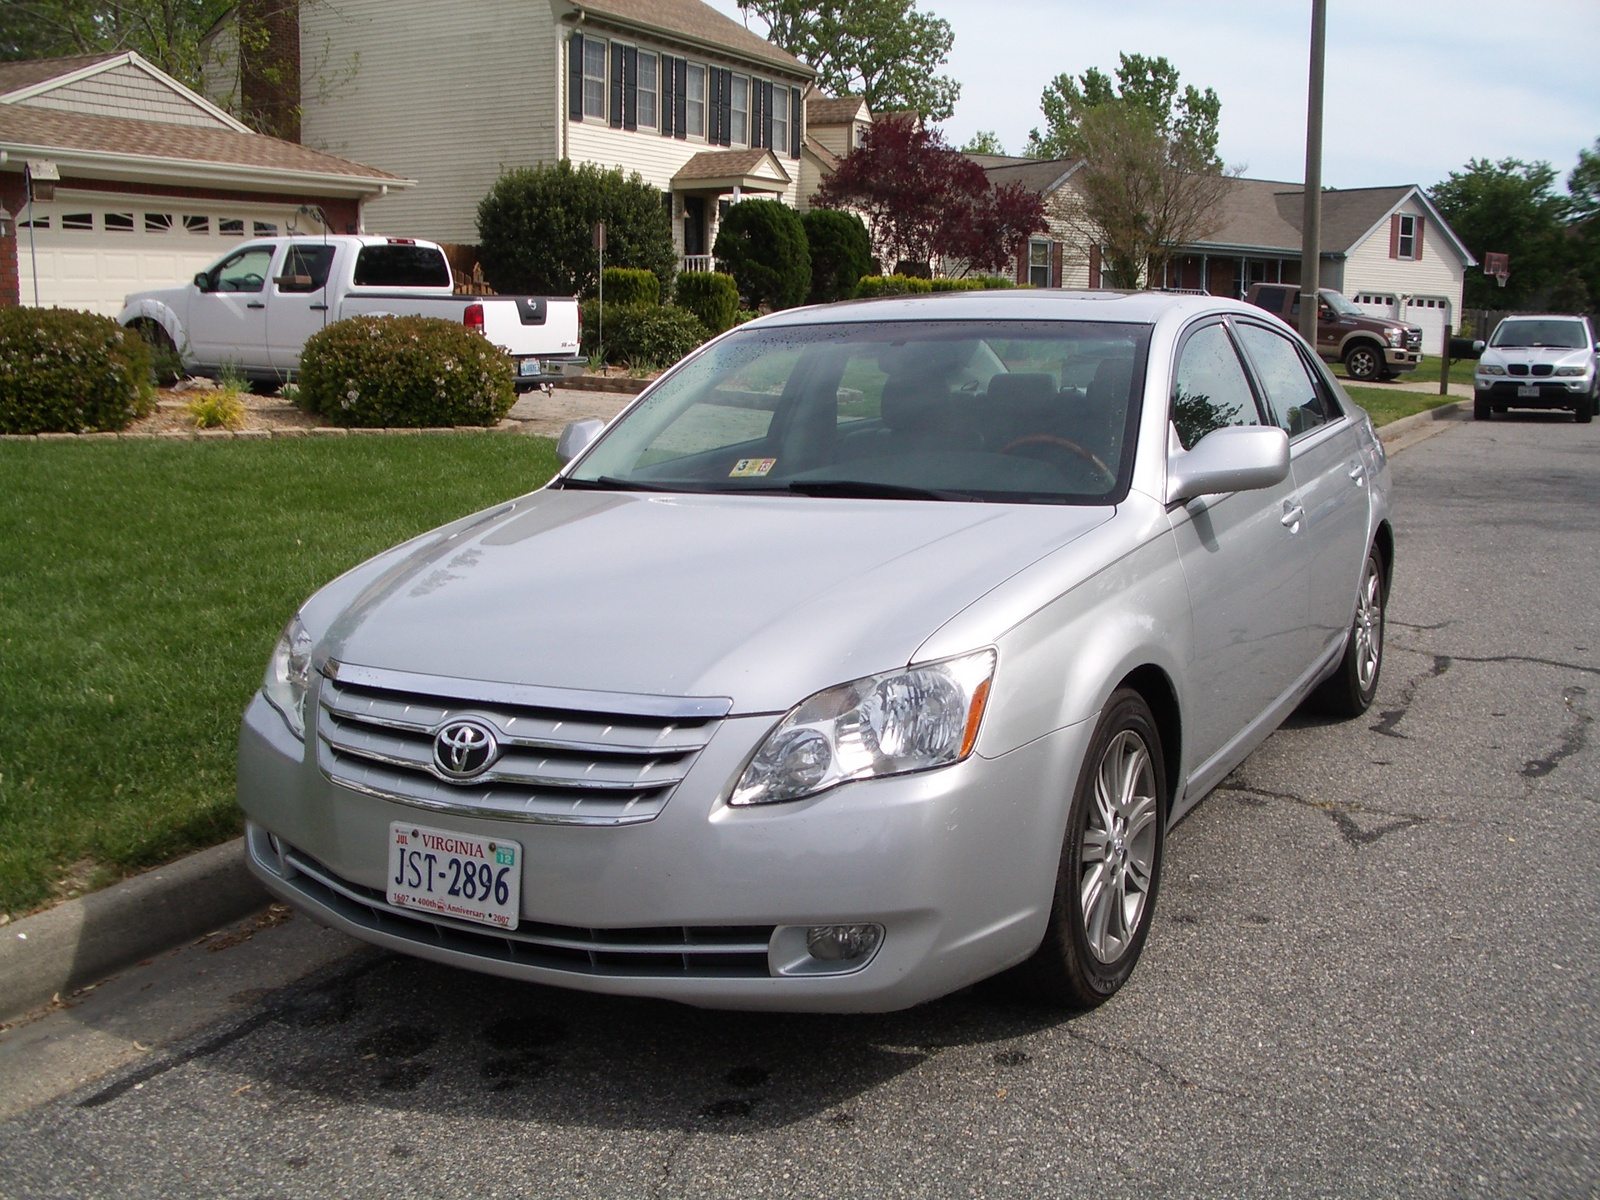 2006 Toyota Avalon - Pictures